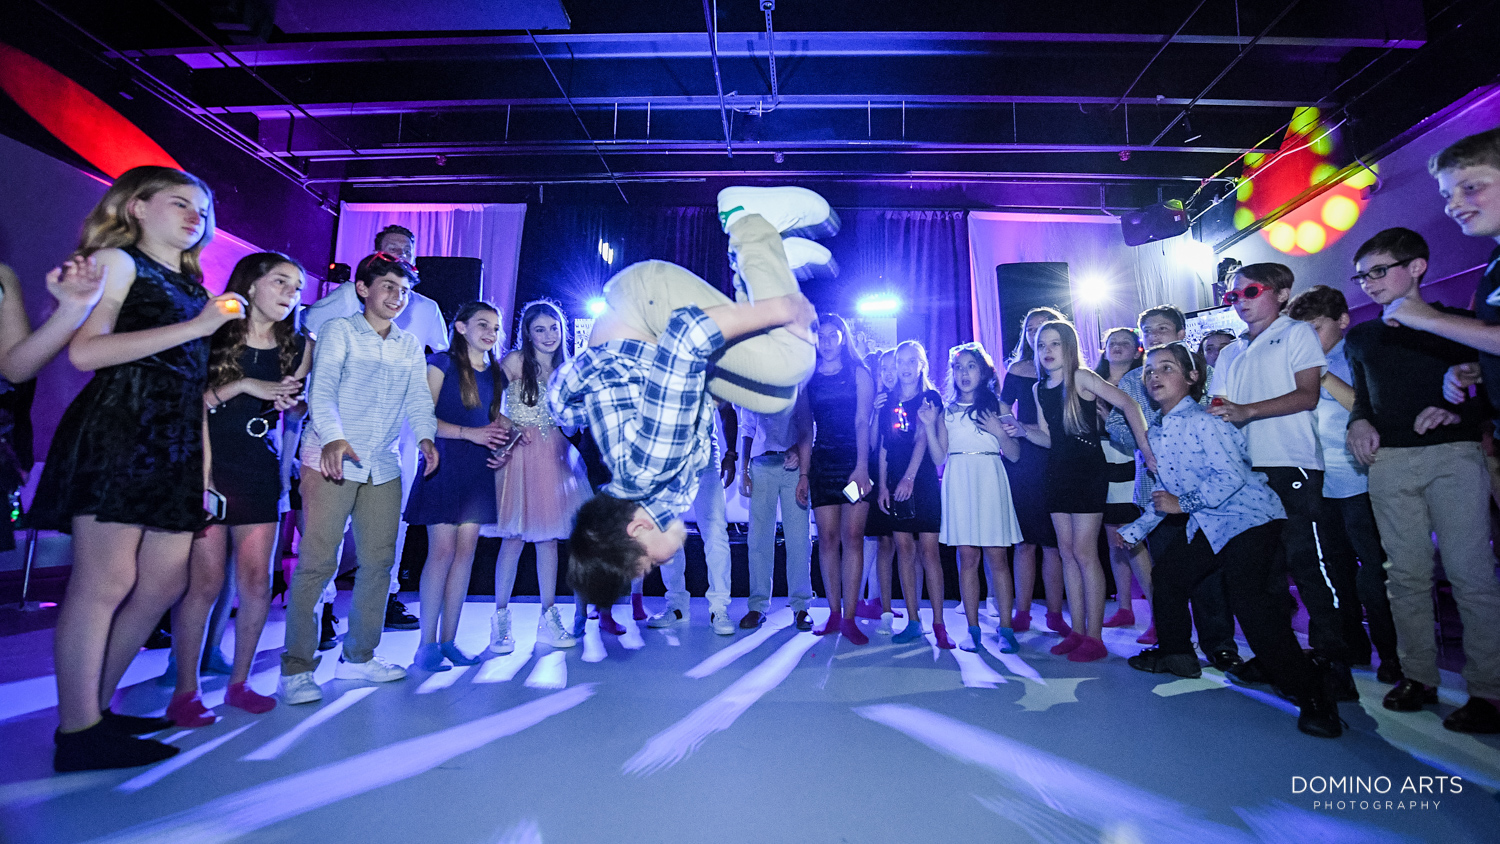 Fun dancing Mitzvah party pictures at Gallery of Amazing Things